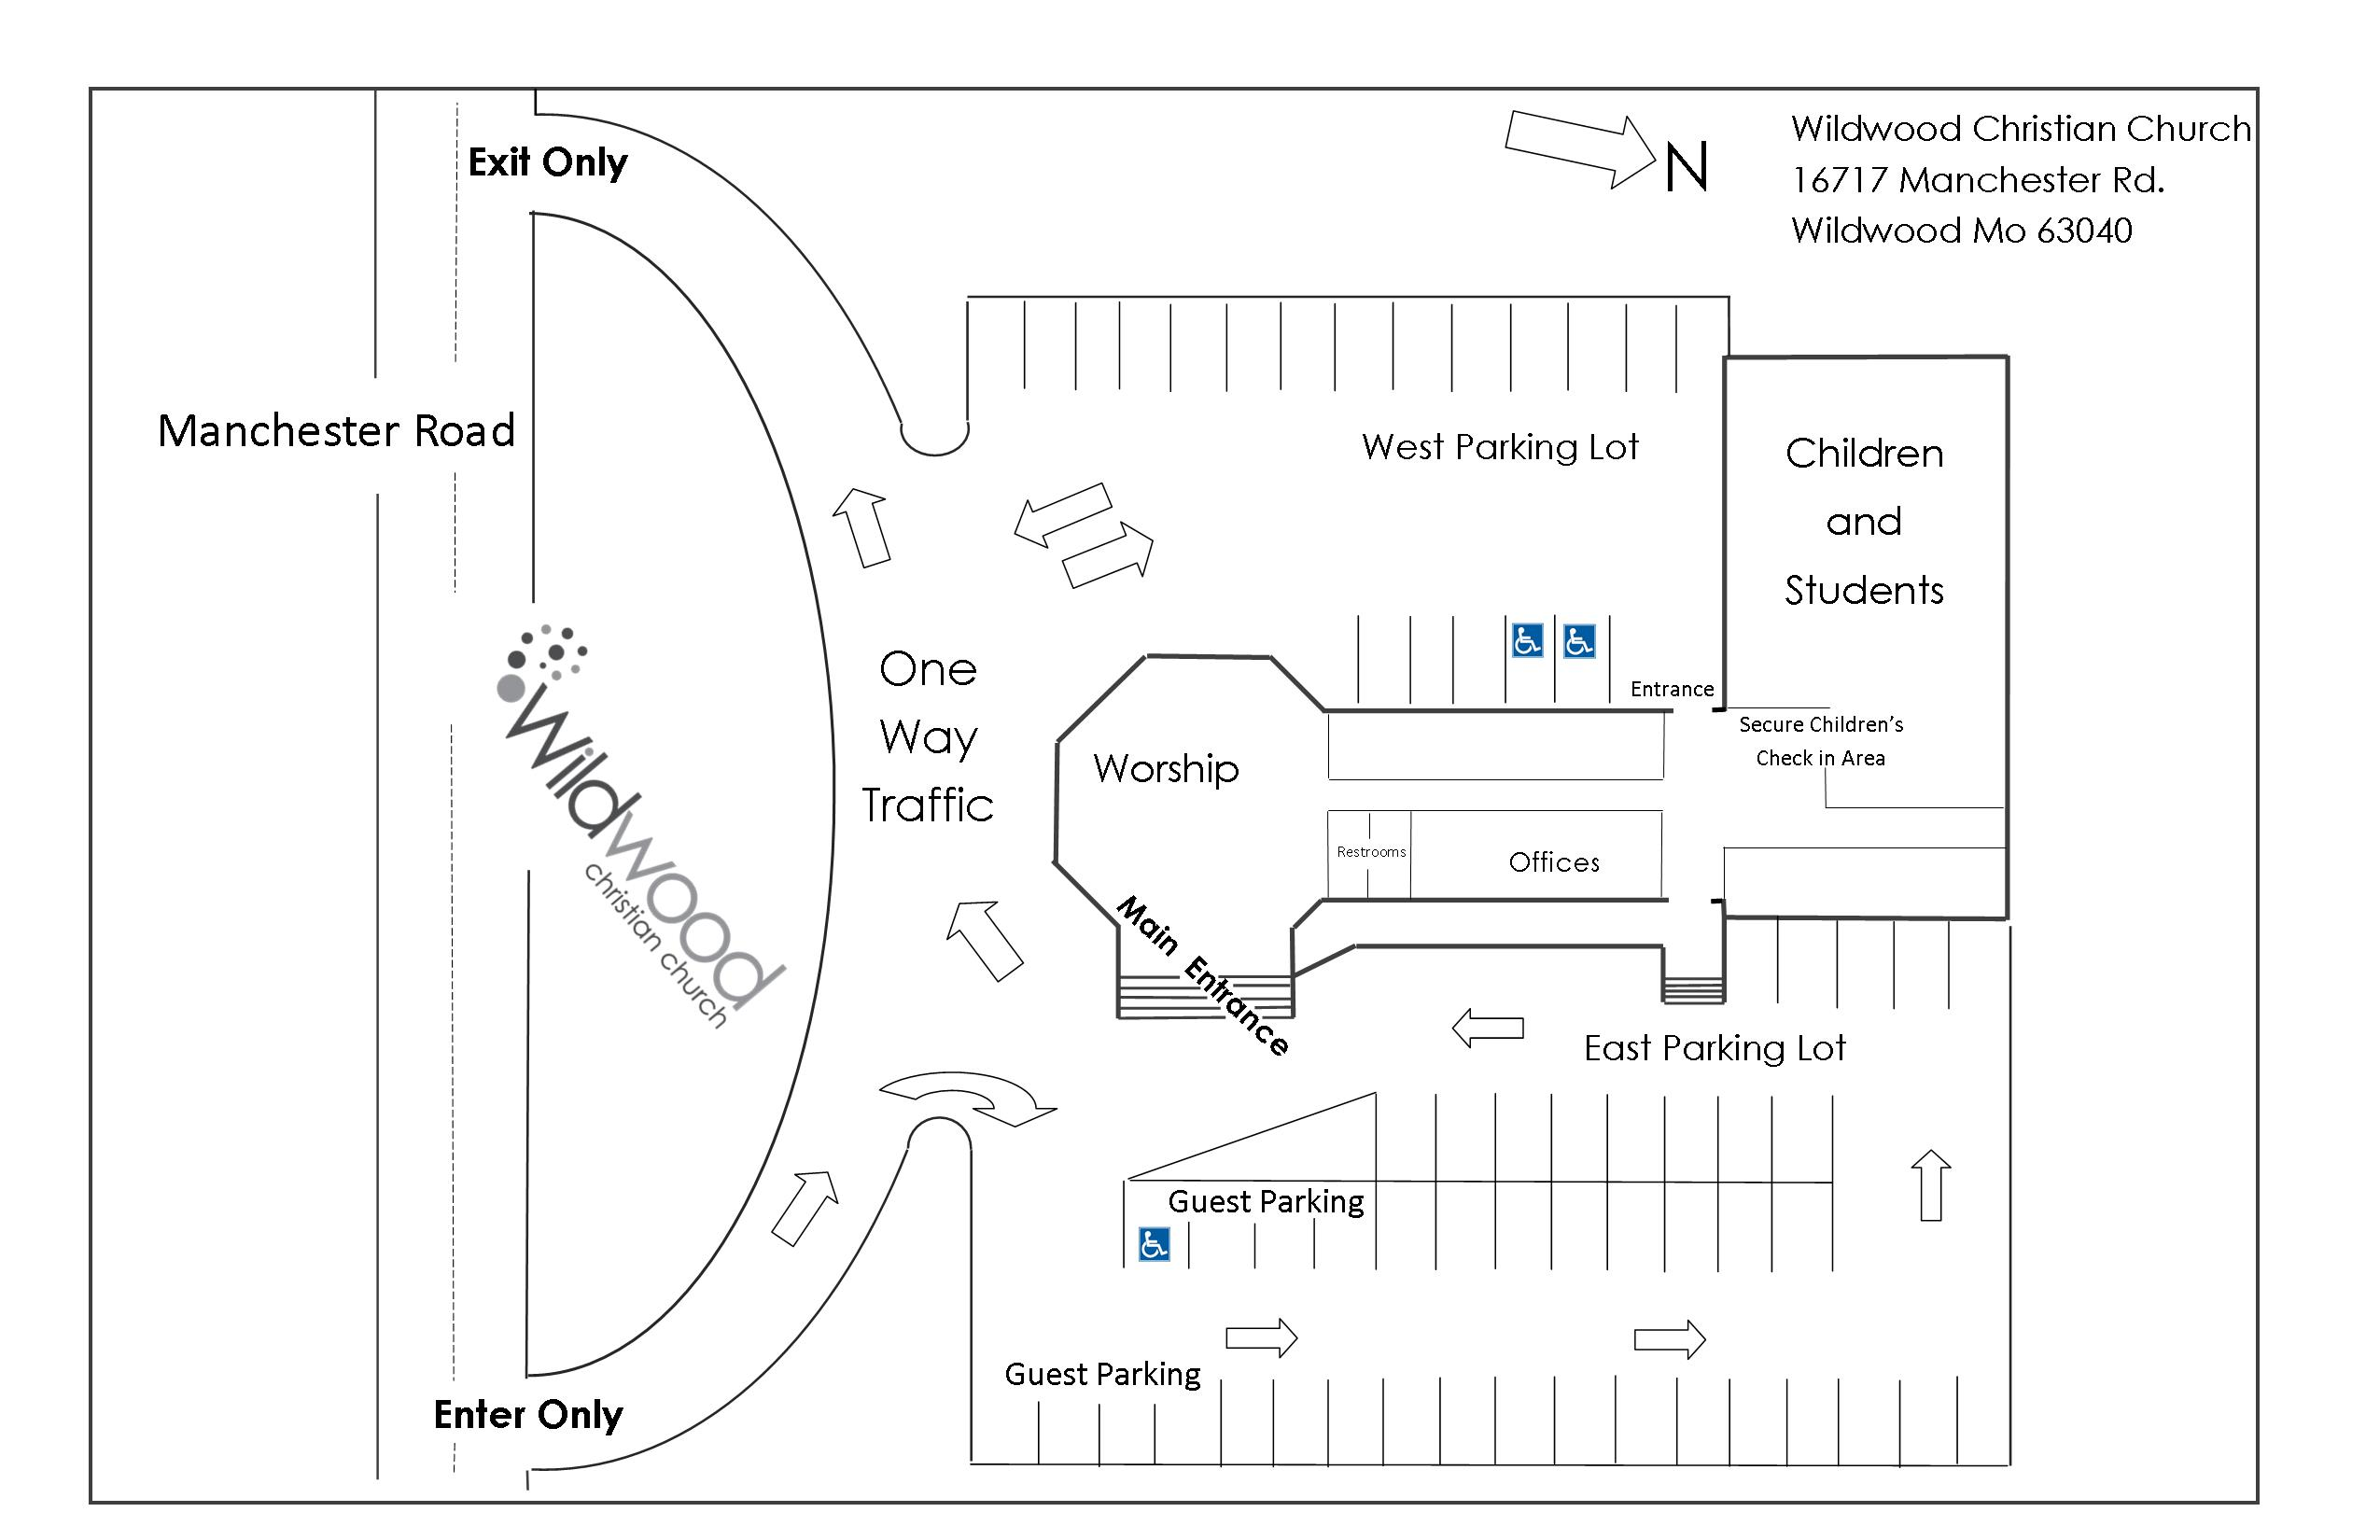 Final Site Map with interior for App in JPEG